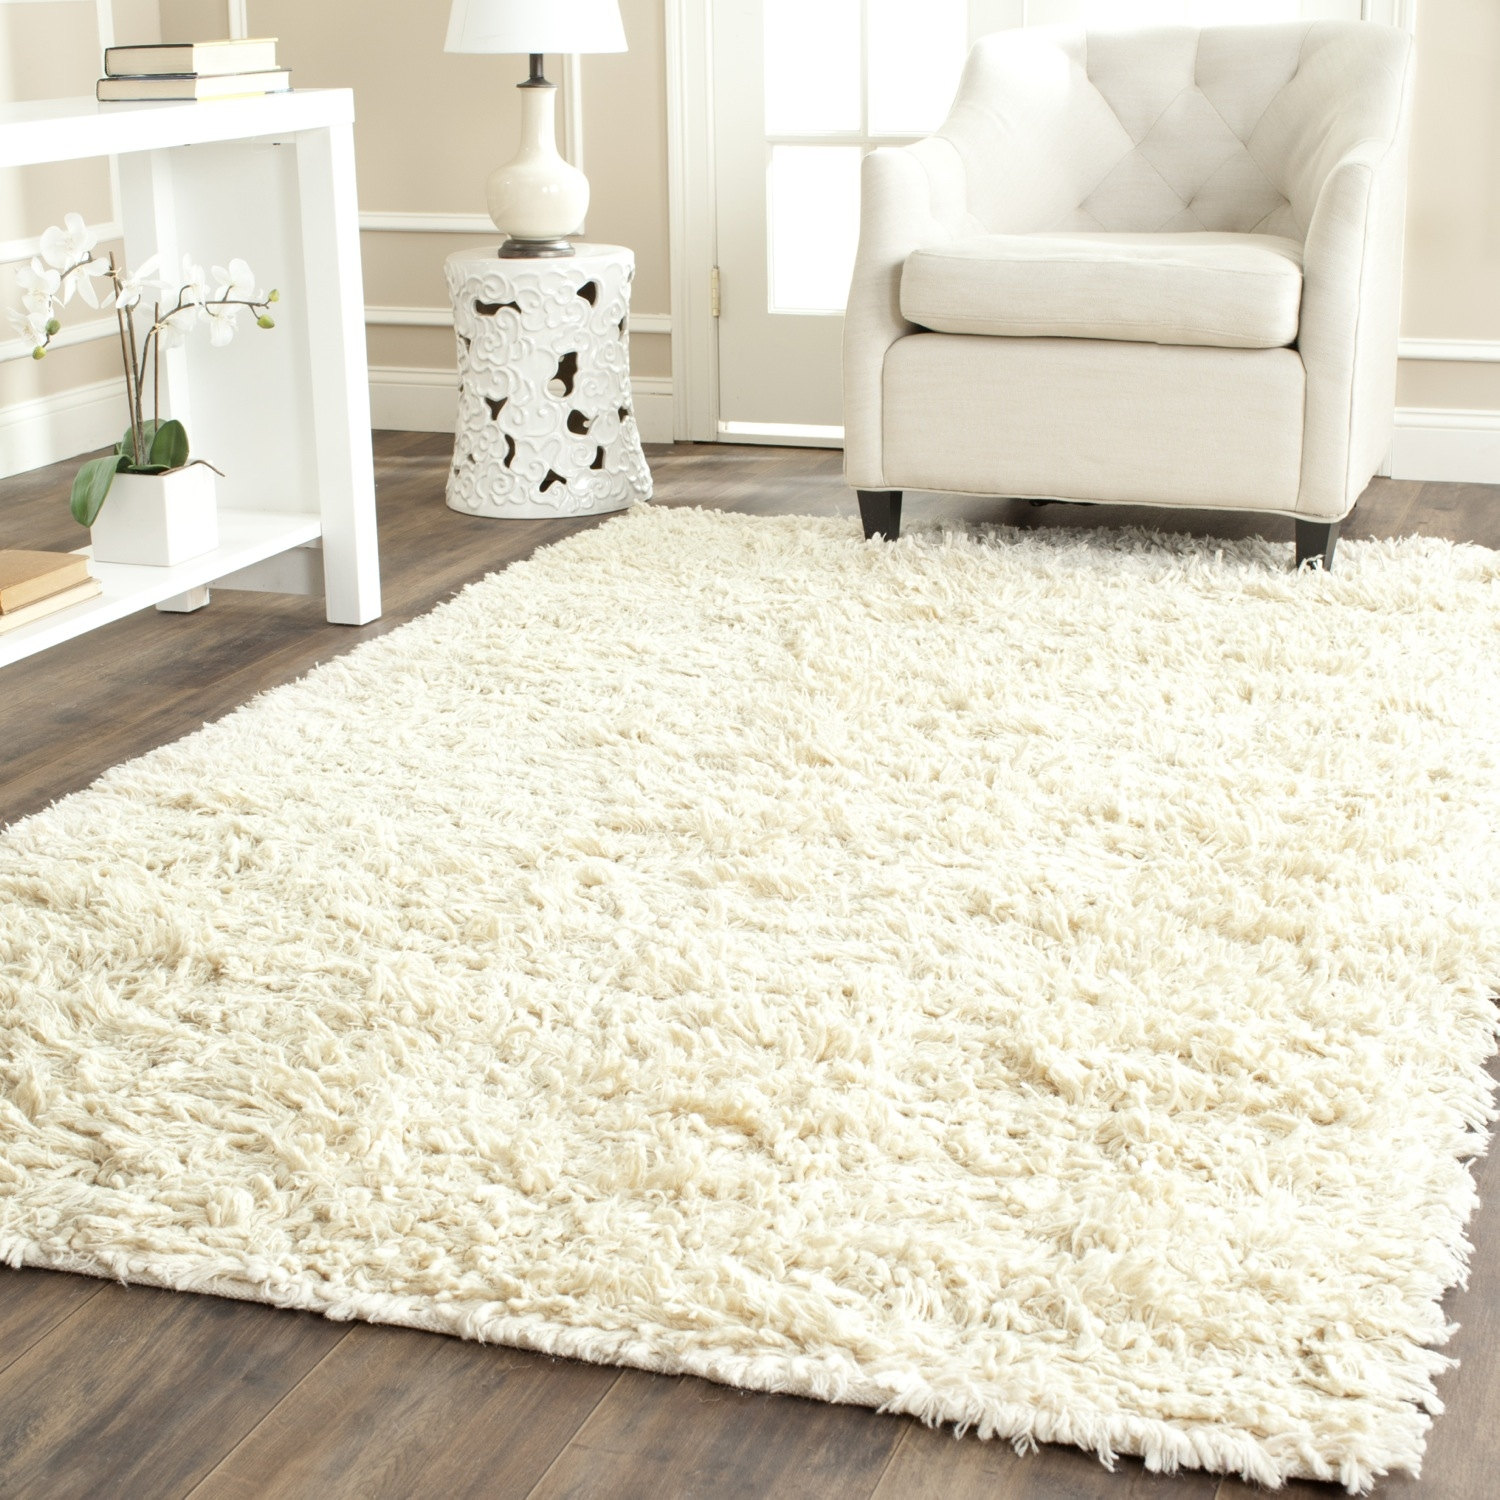 Popular Photo of Wool Area Rugs